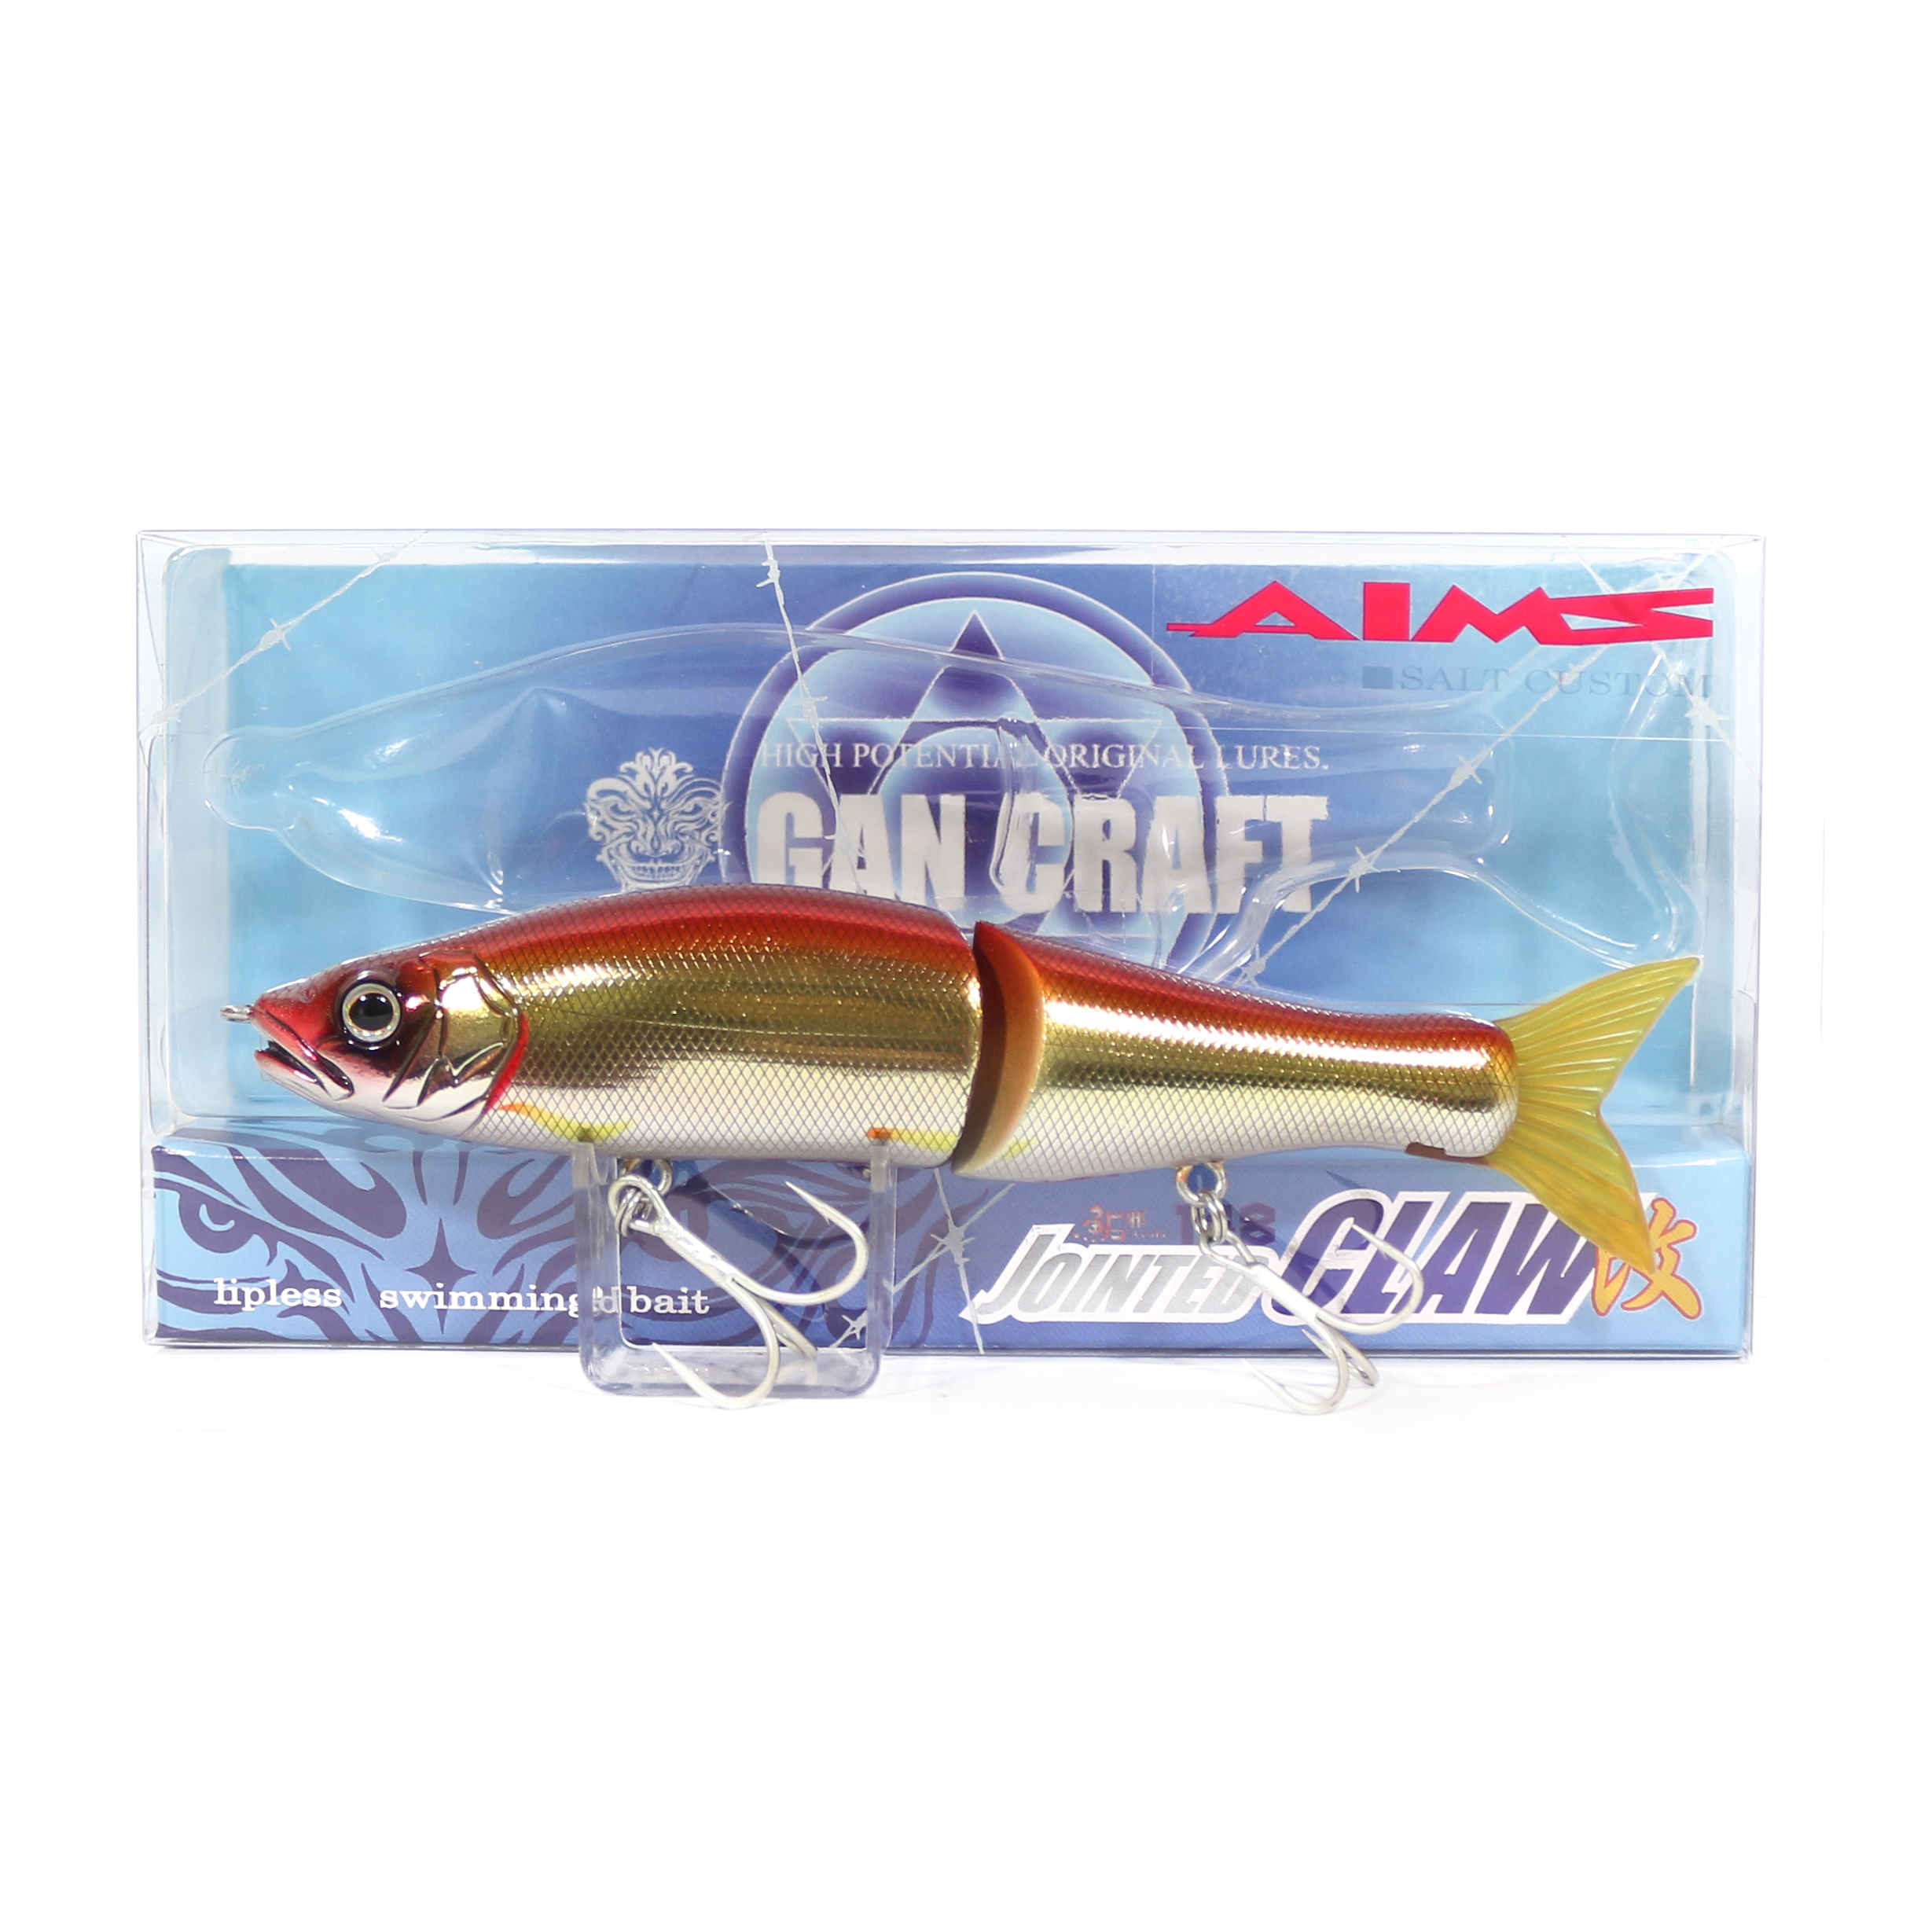 Gan Craft Jointed Claw 148S Salt Slow Sinking Jointed Lure  AS-05 (0205)  tienda en linea